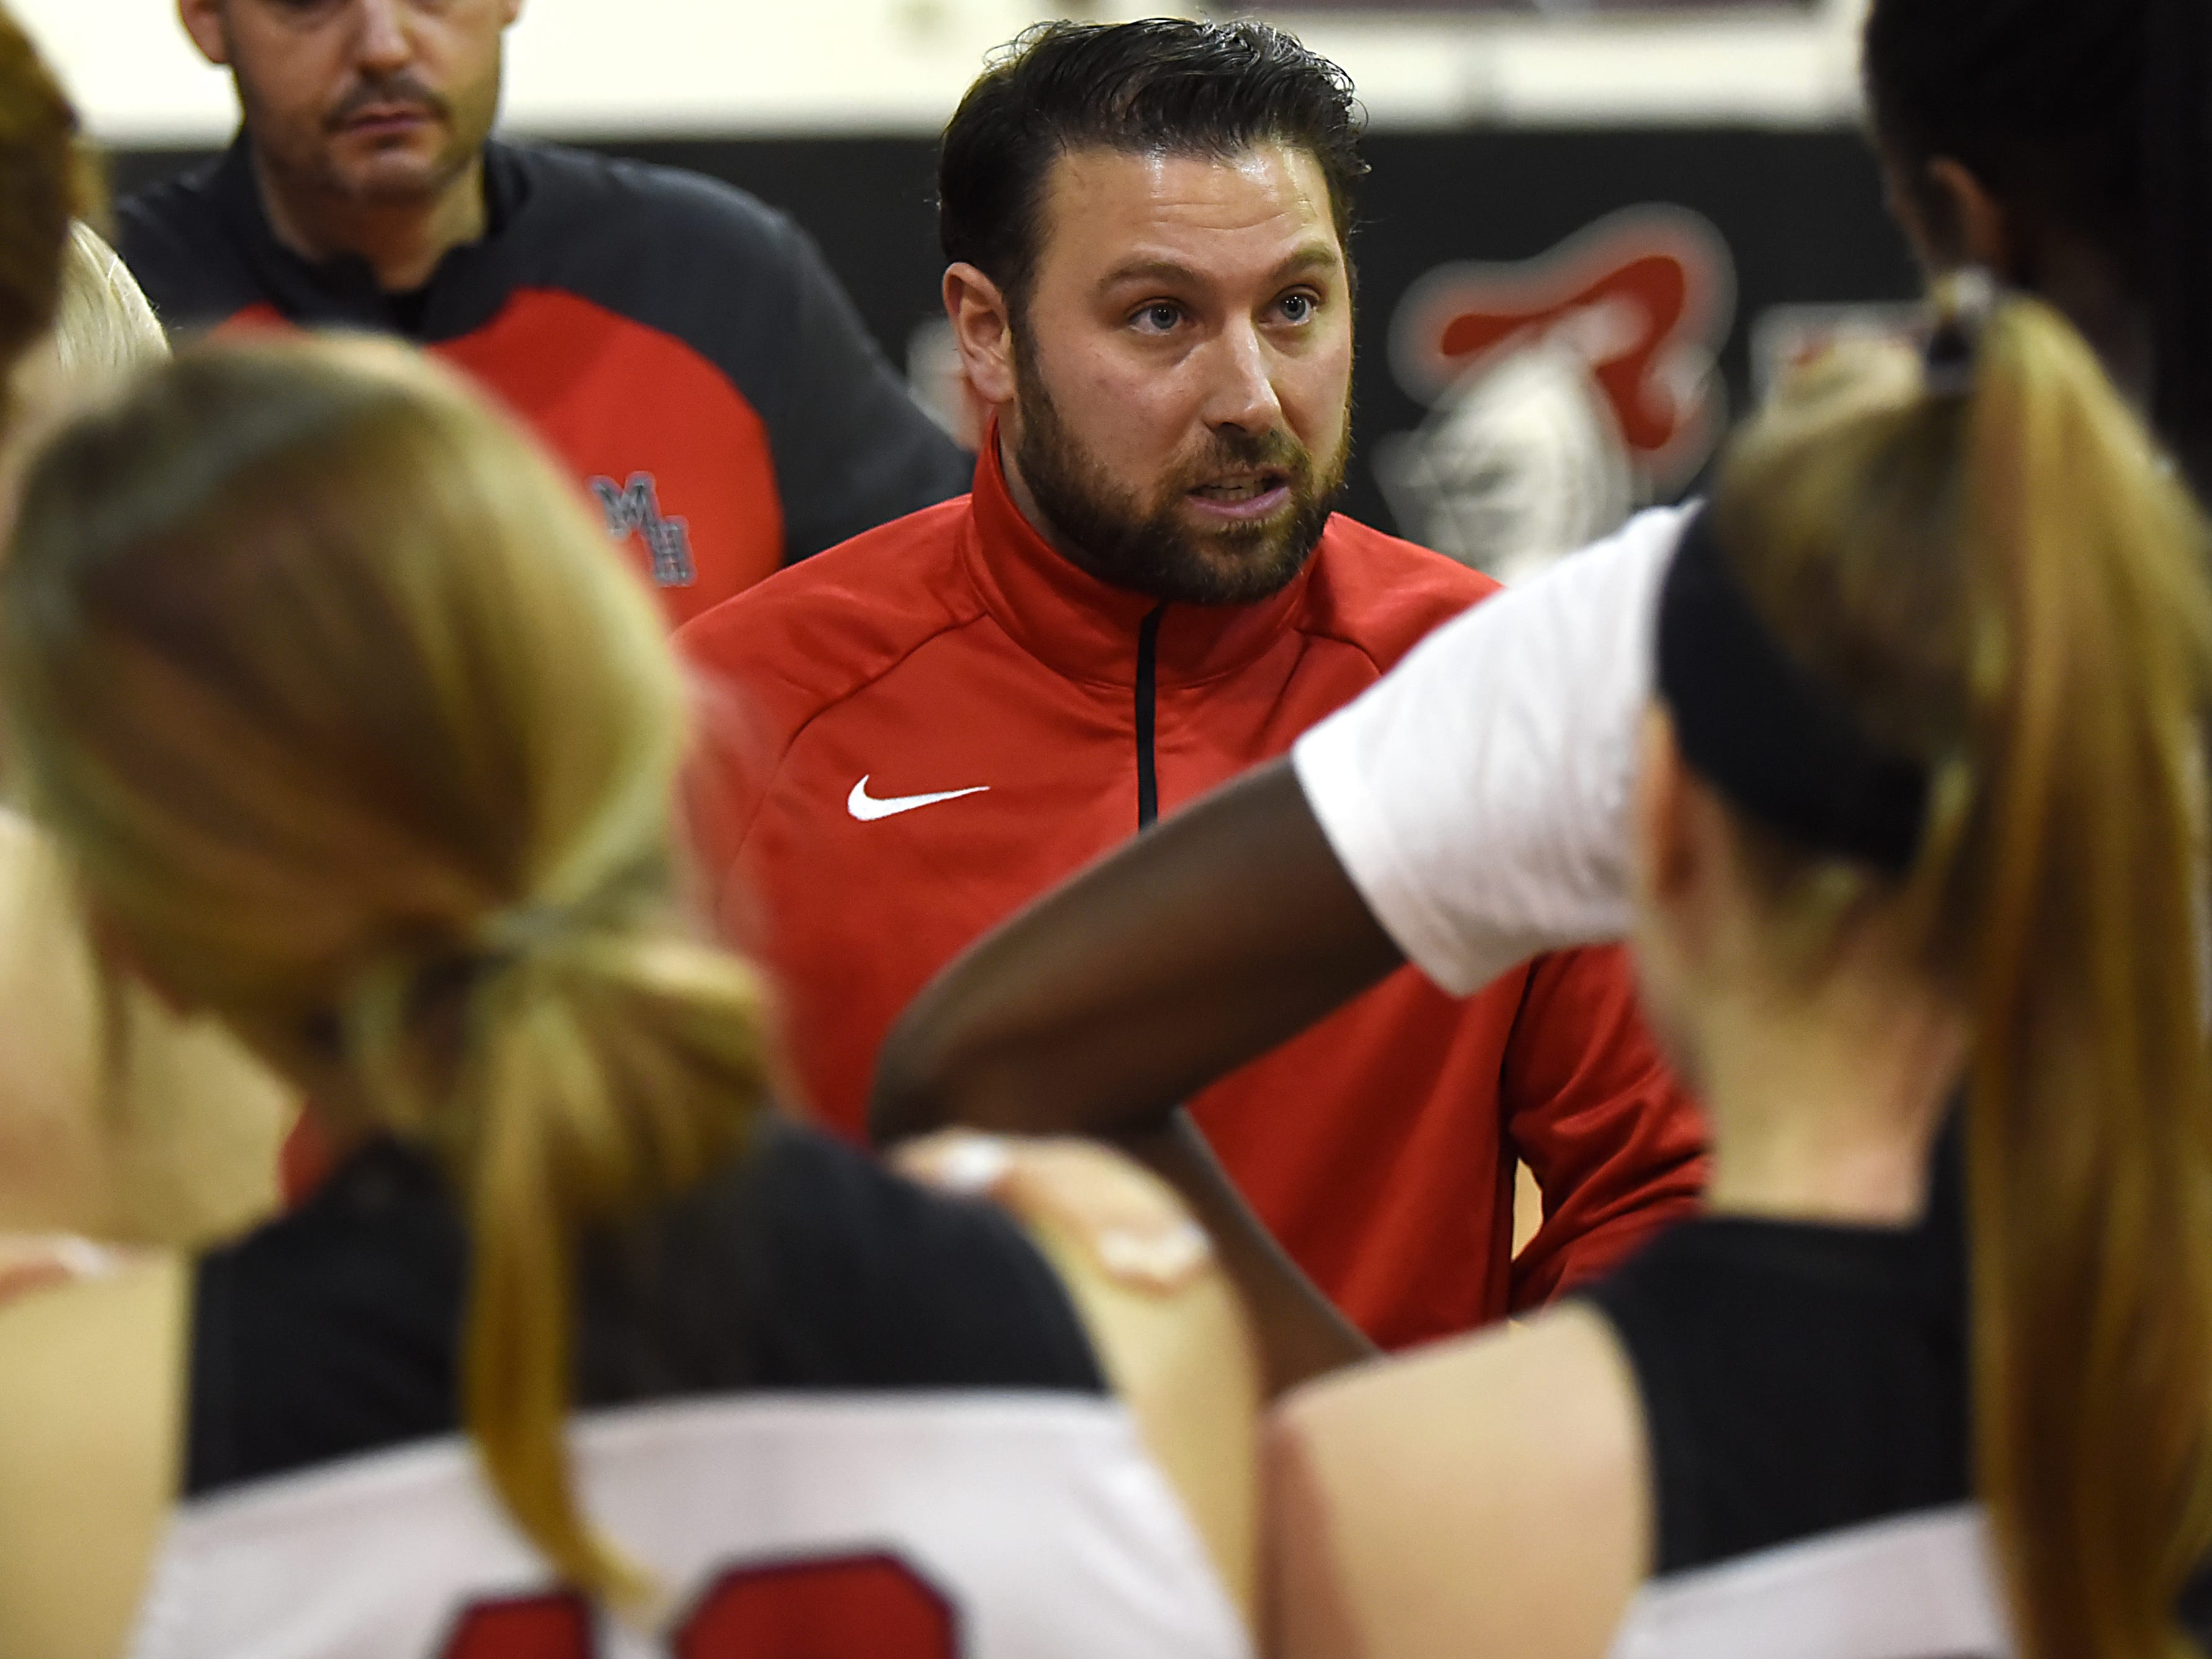 Boonton Vs. Morris Hills girls basketball game at the Morris Hills Holiday Tournament in Rockaway on Friday December 28, 2018. Morris Hills coach Brian Dillon talks to the team.